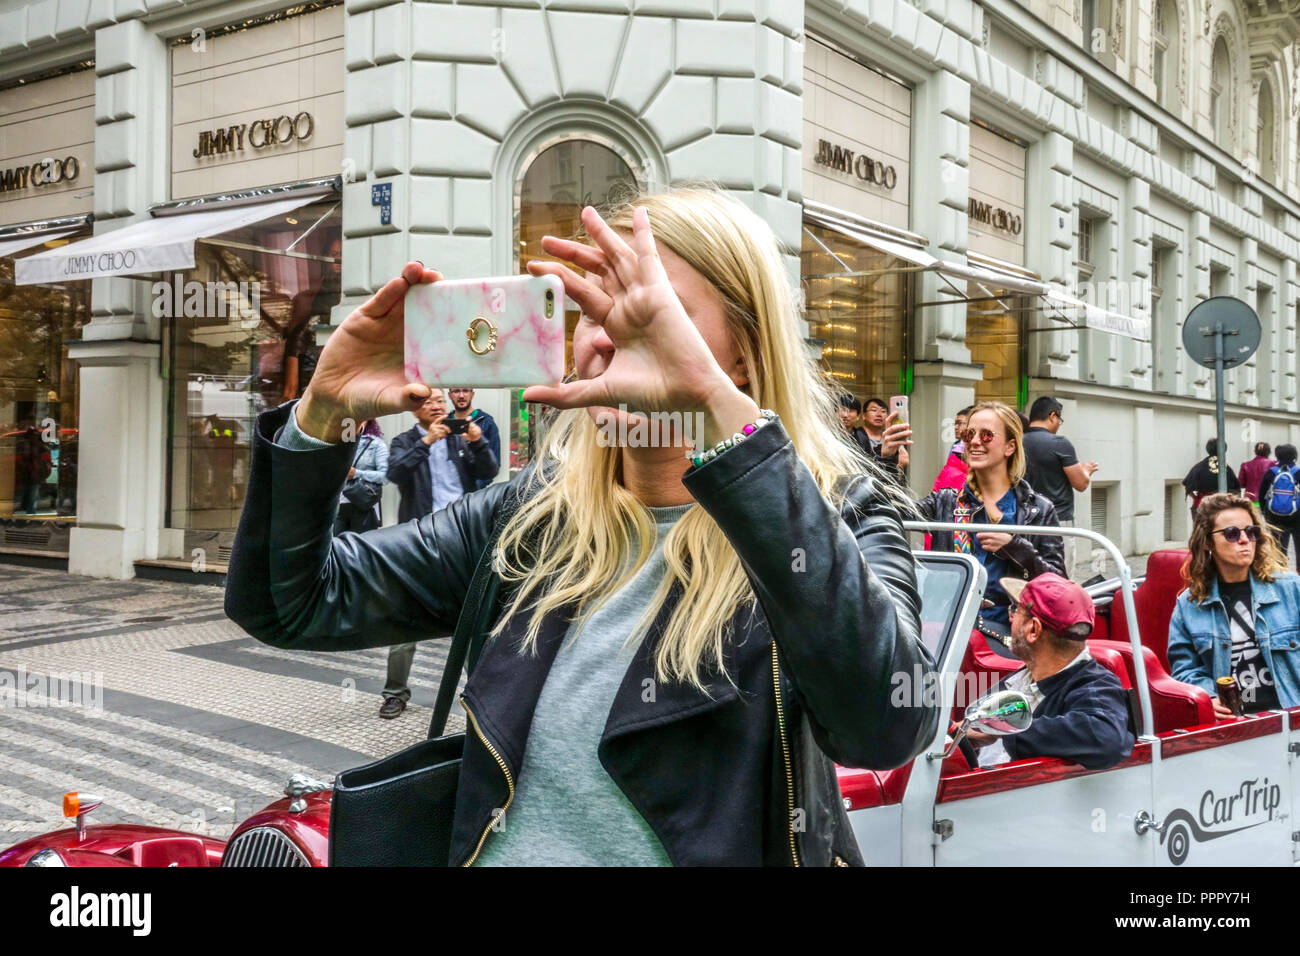 Young woman taking photos in front of Jimmy Choo luxury store, Parizska street, Prague, Czech Republic - Stock Image